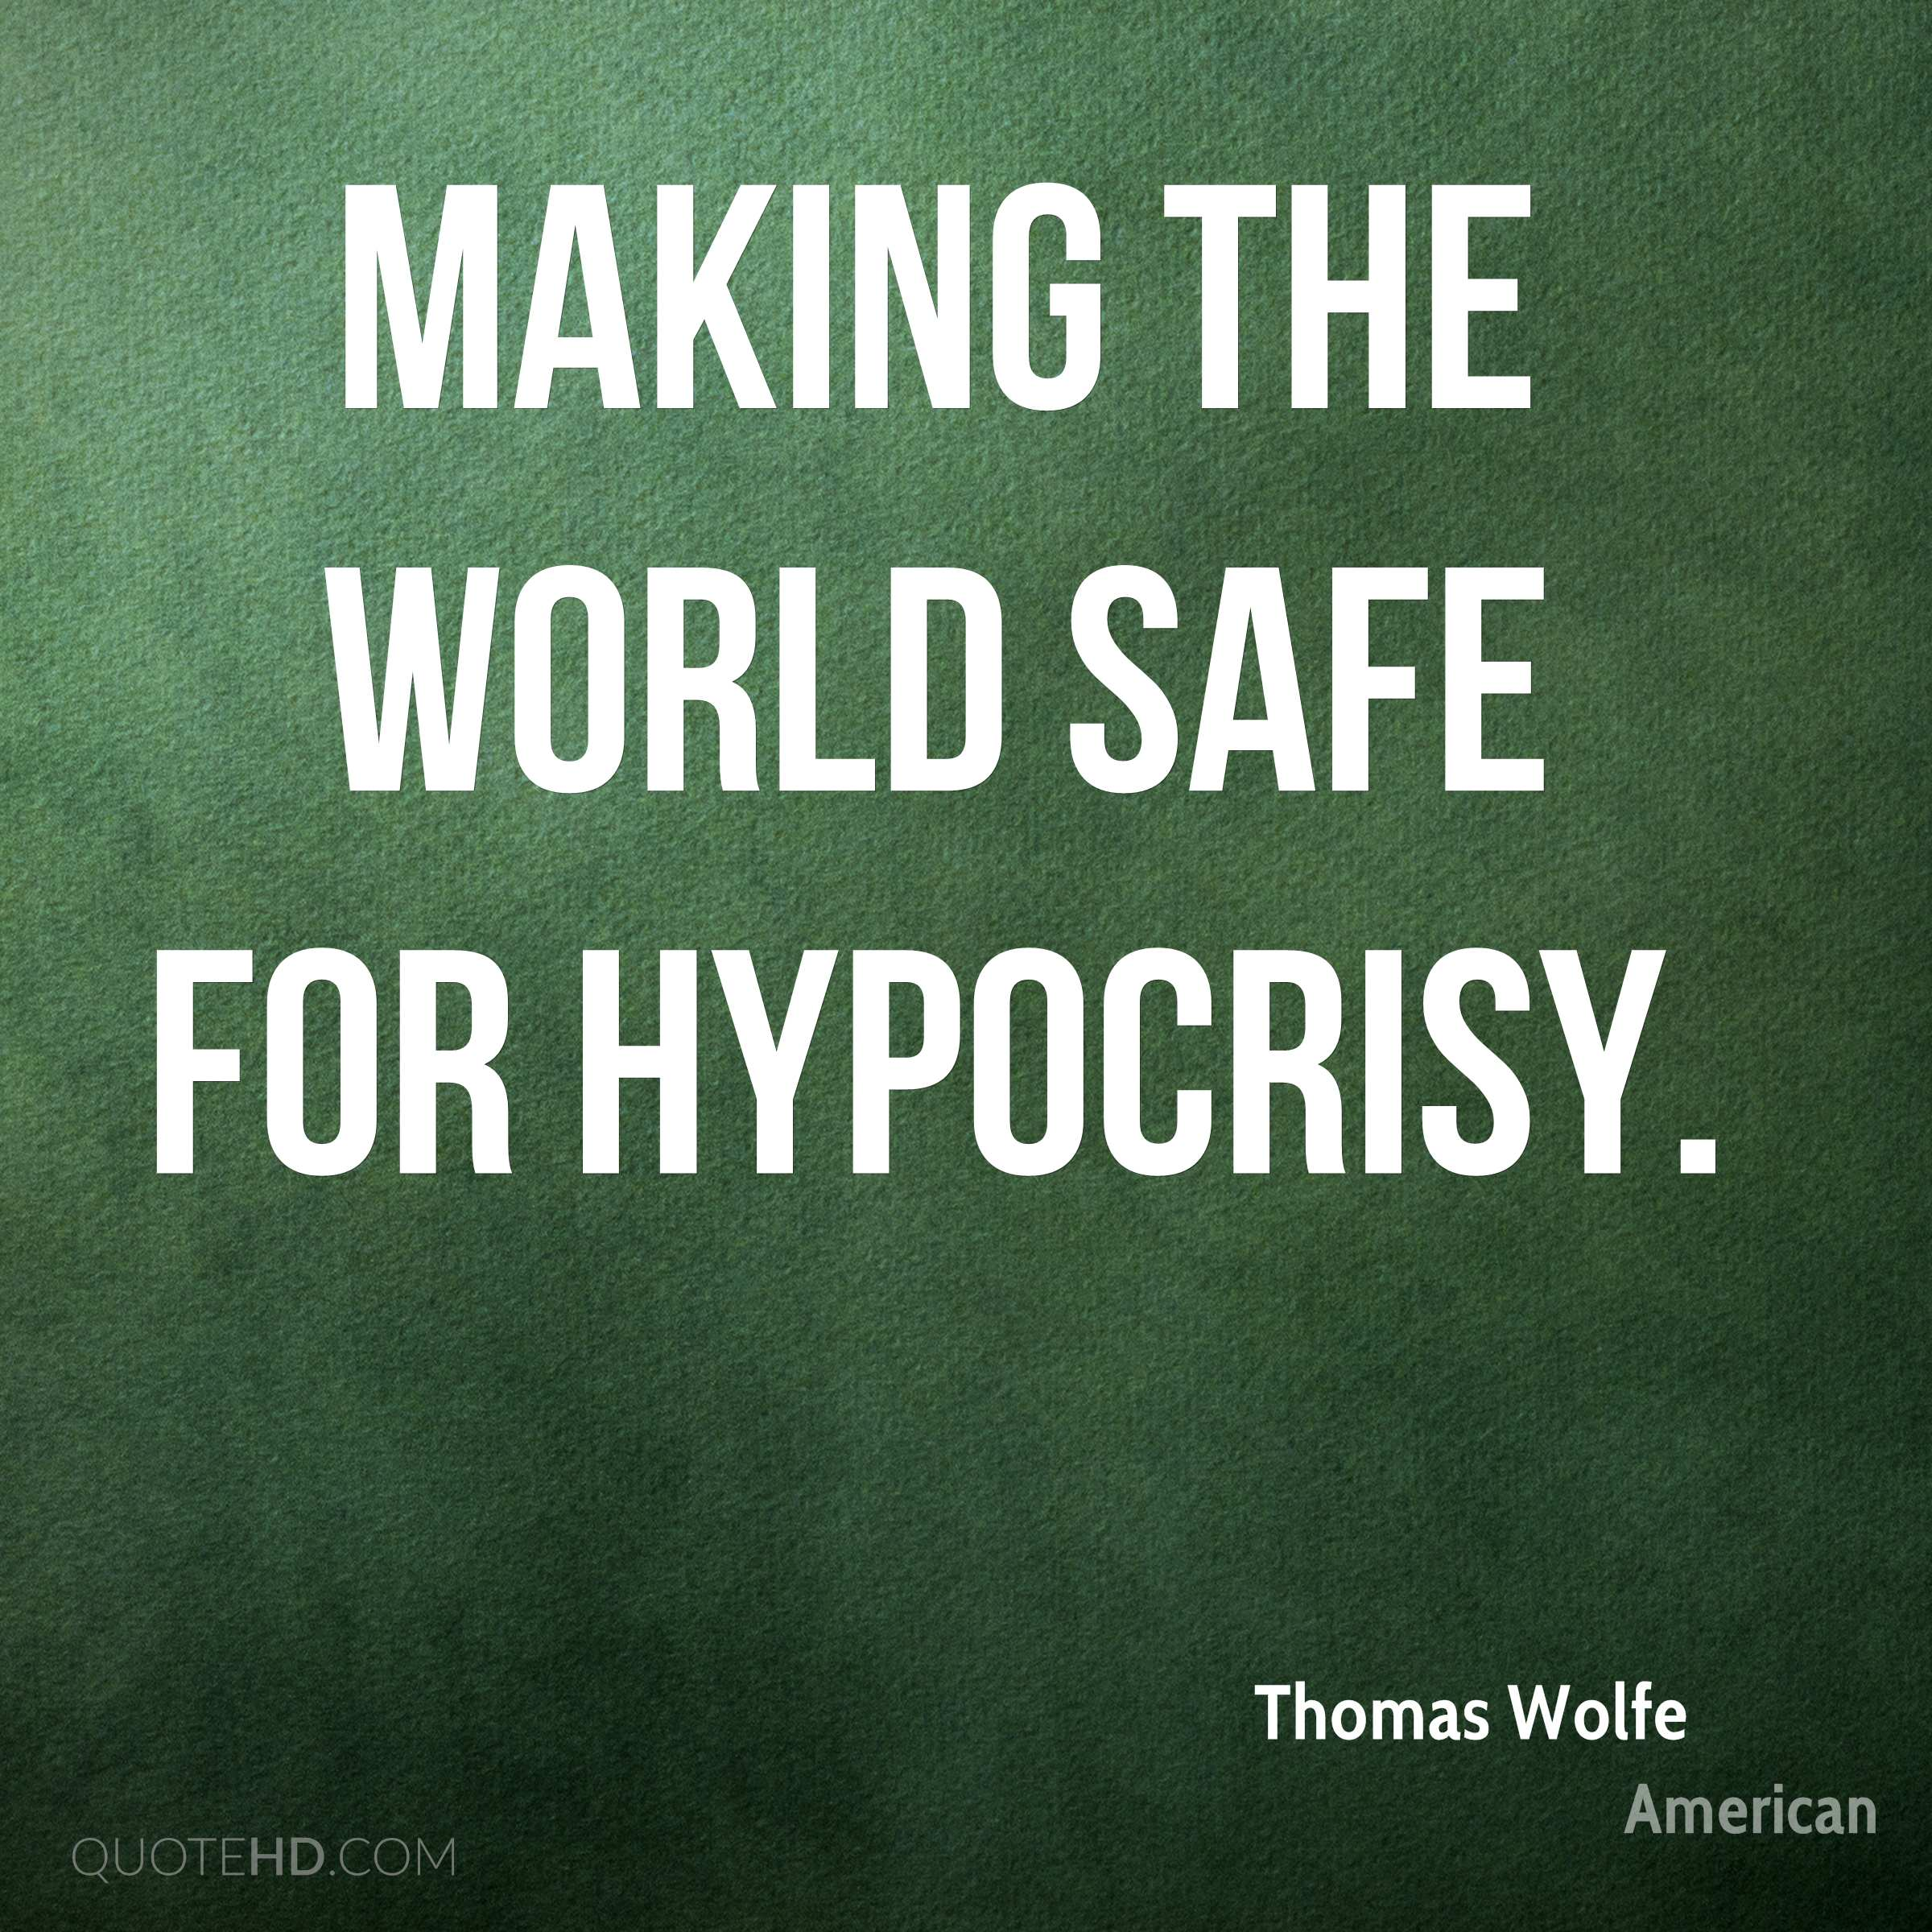 Making the world safe for hypocrisy.